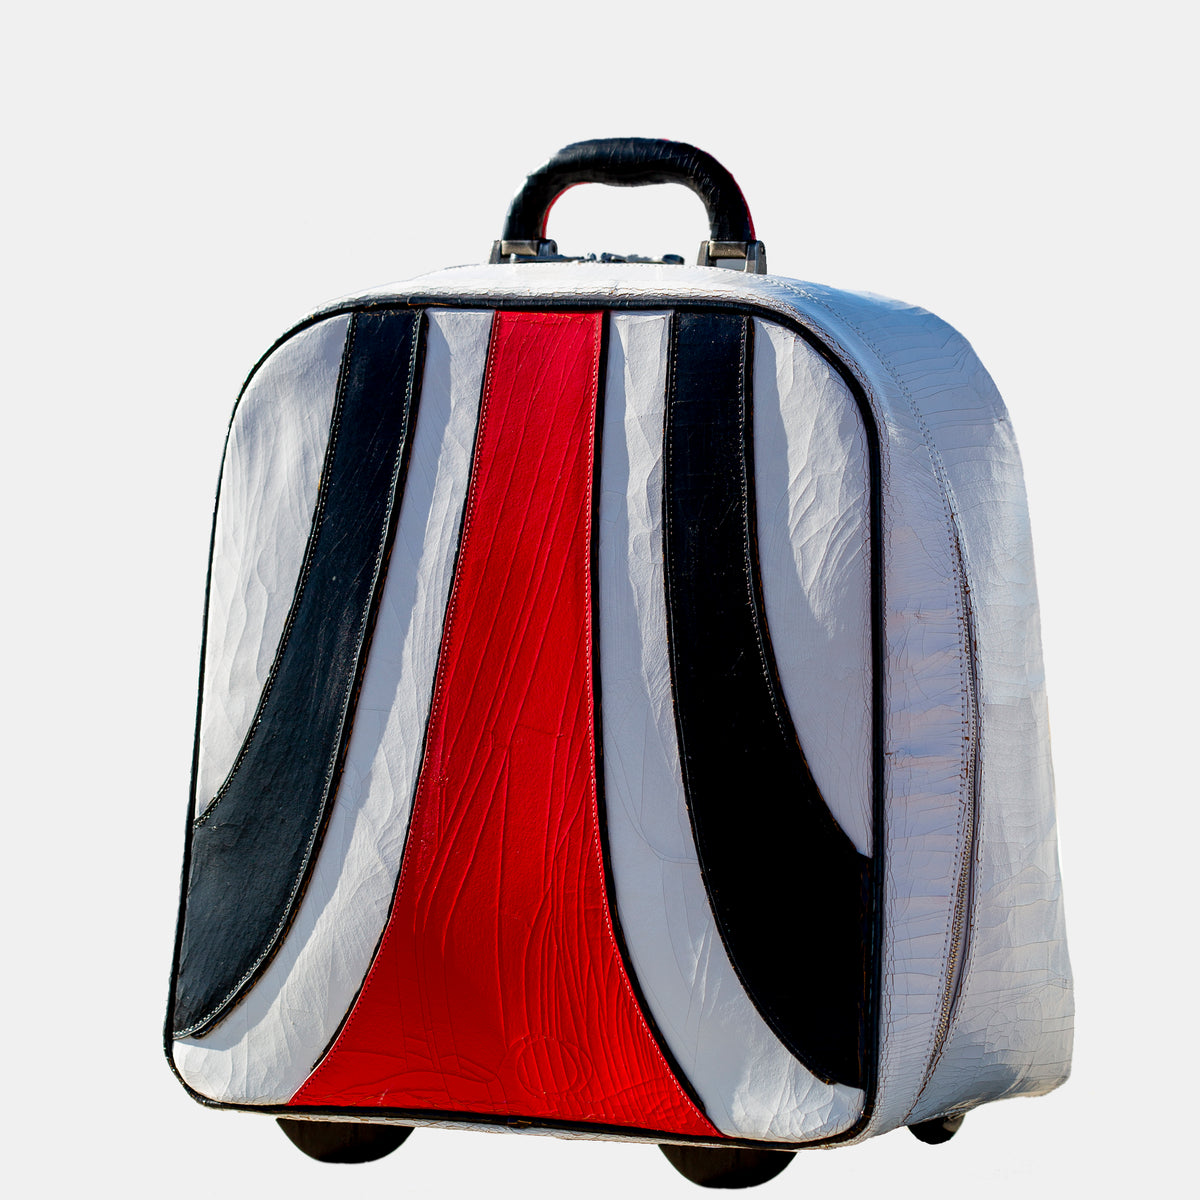 Bedford Bowler Rolling Luggage